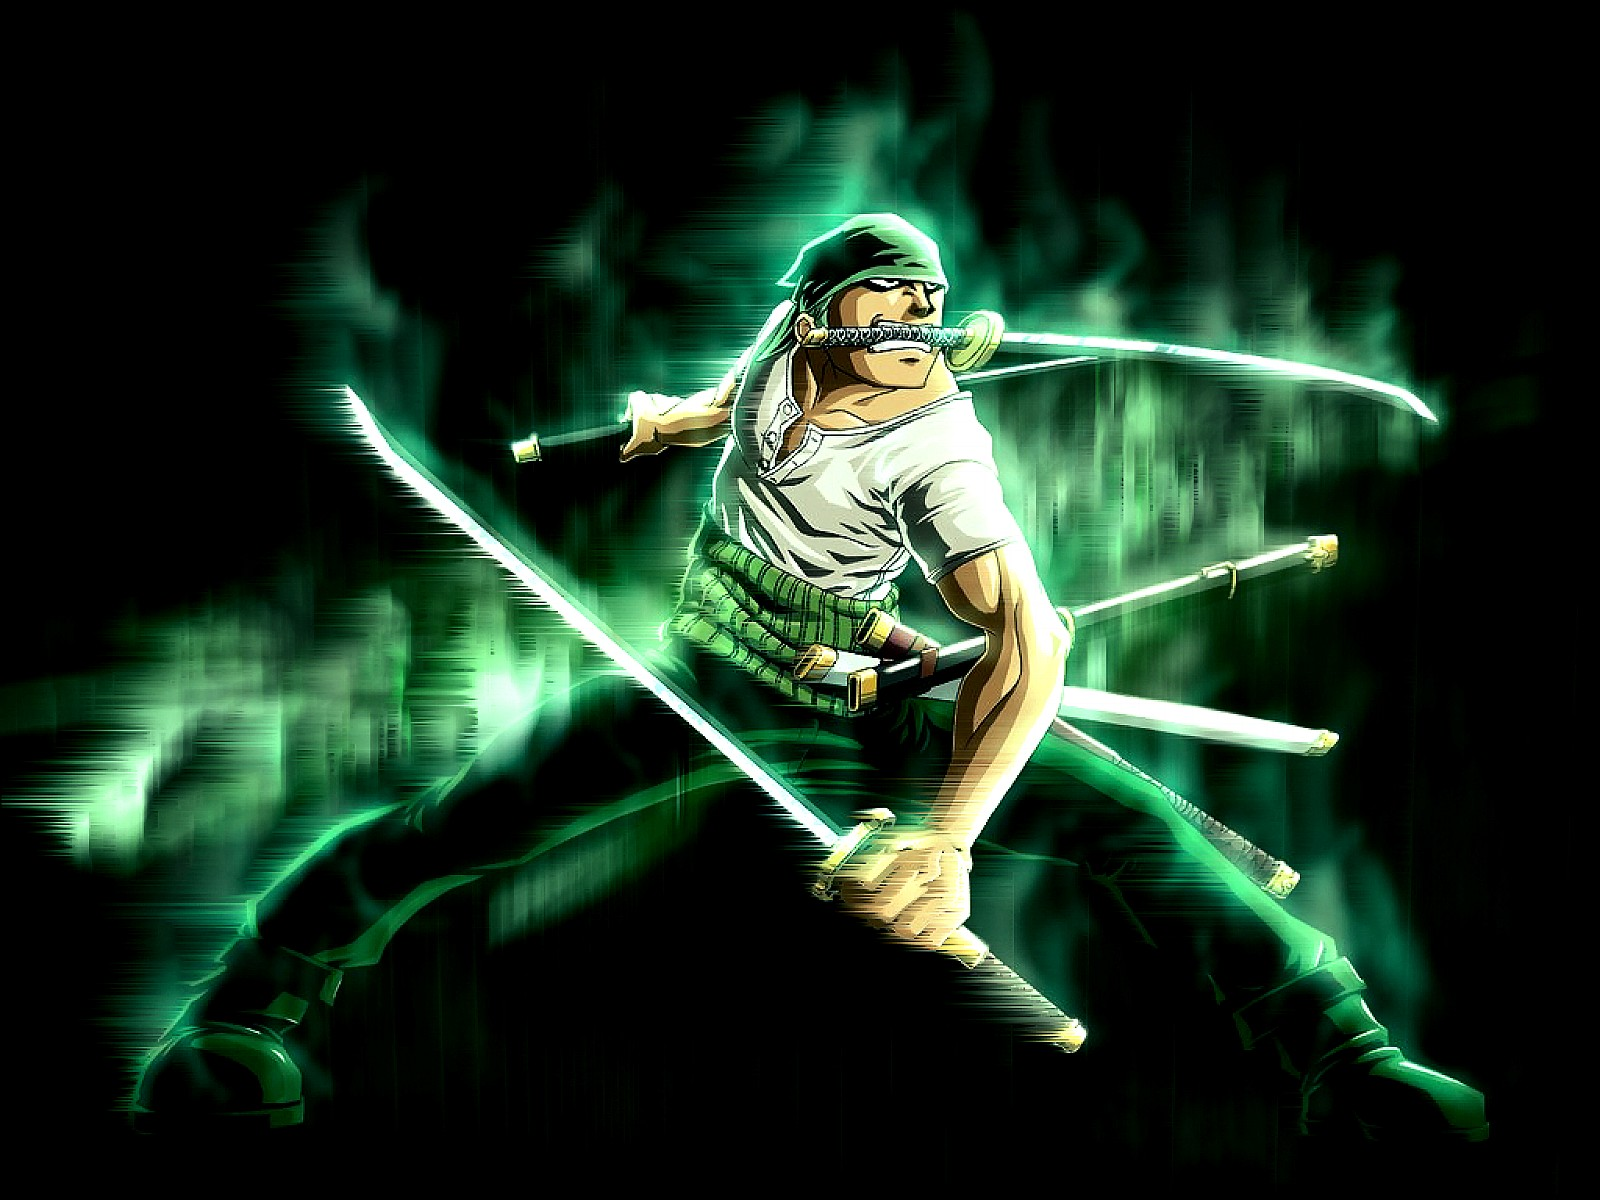 Zoro wallpaper hd wallpapersafari - One piece logo zoro ...